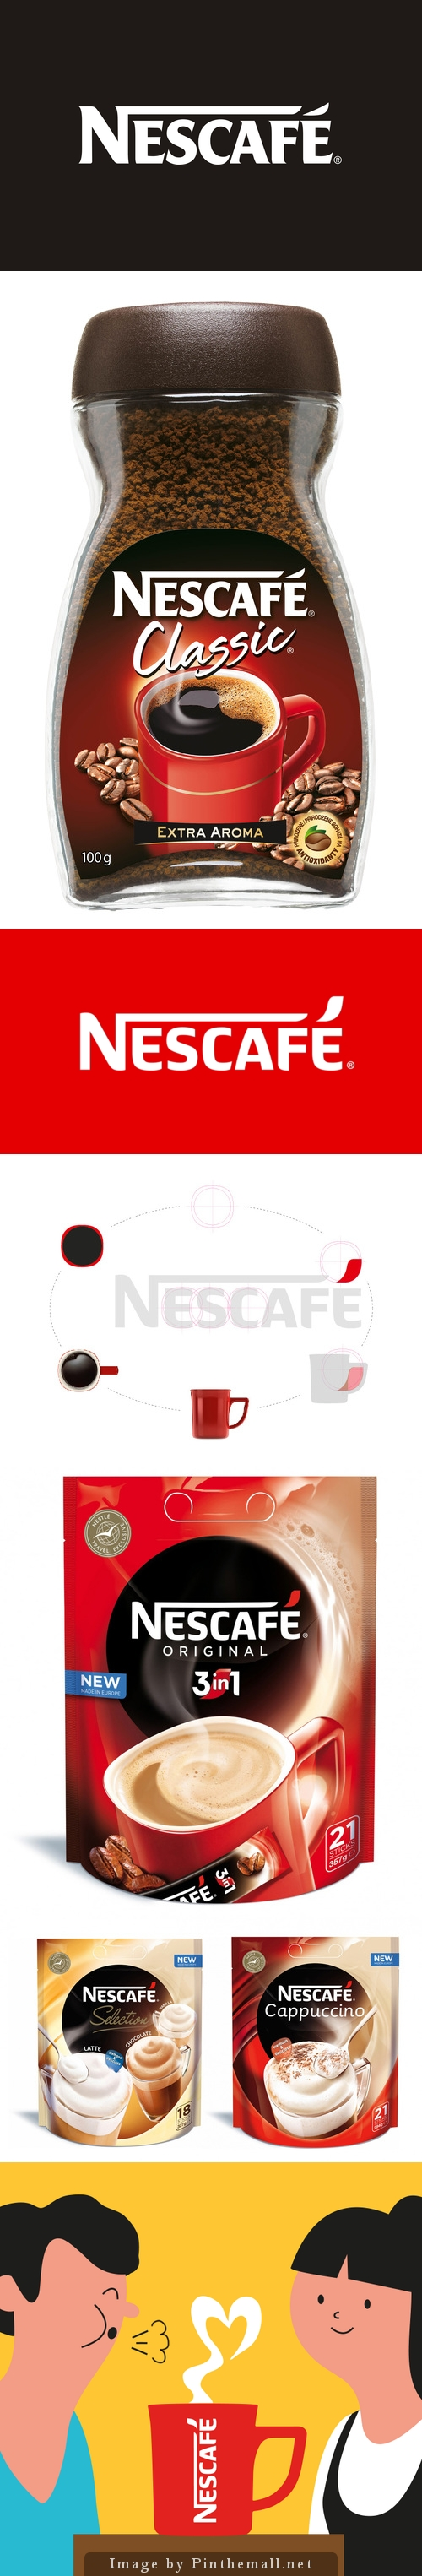 Before & After: Nescafé Unveils New Logo and Global Branding